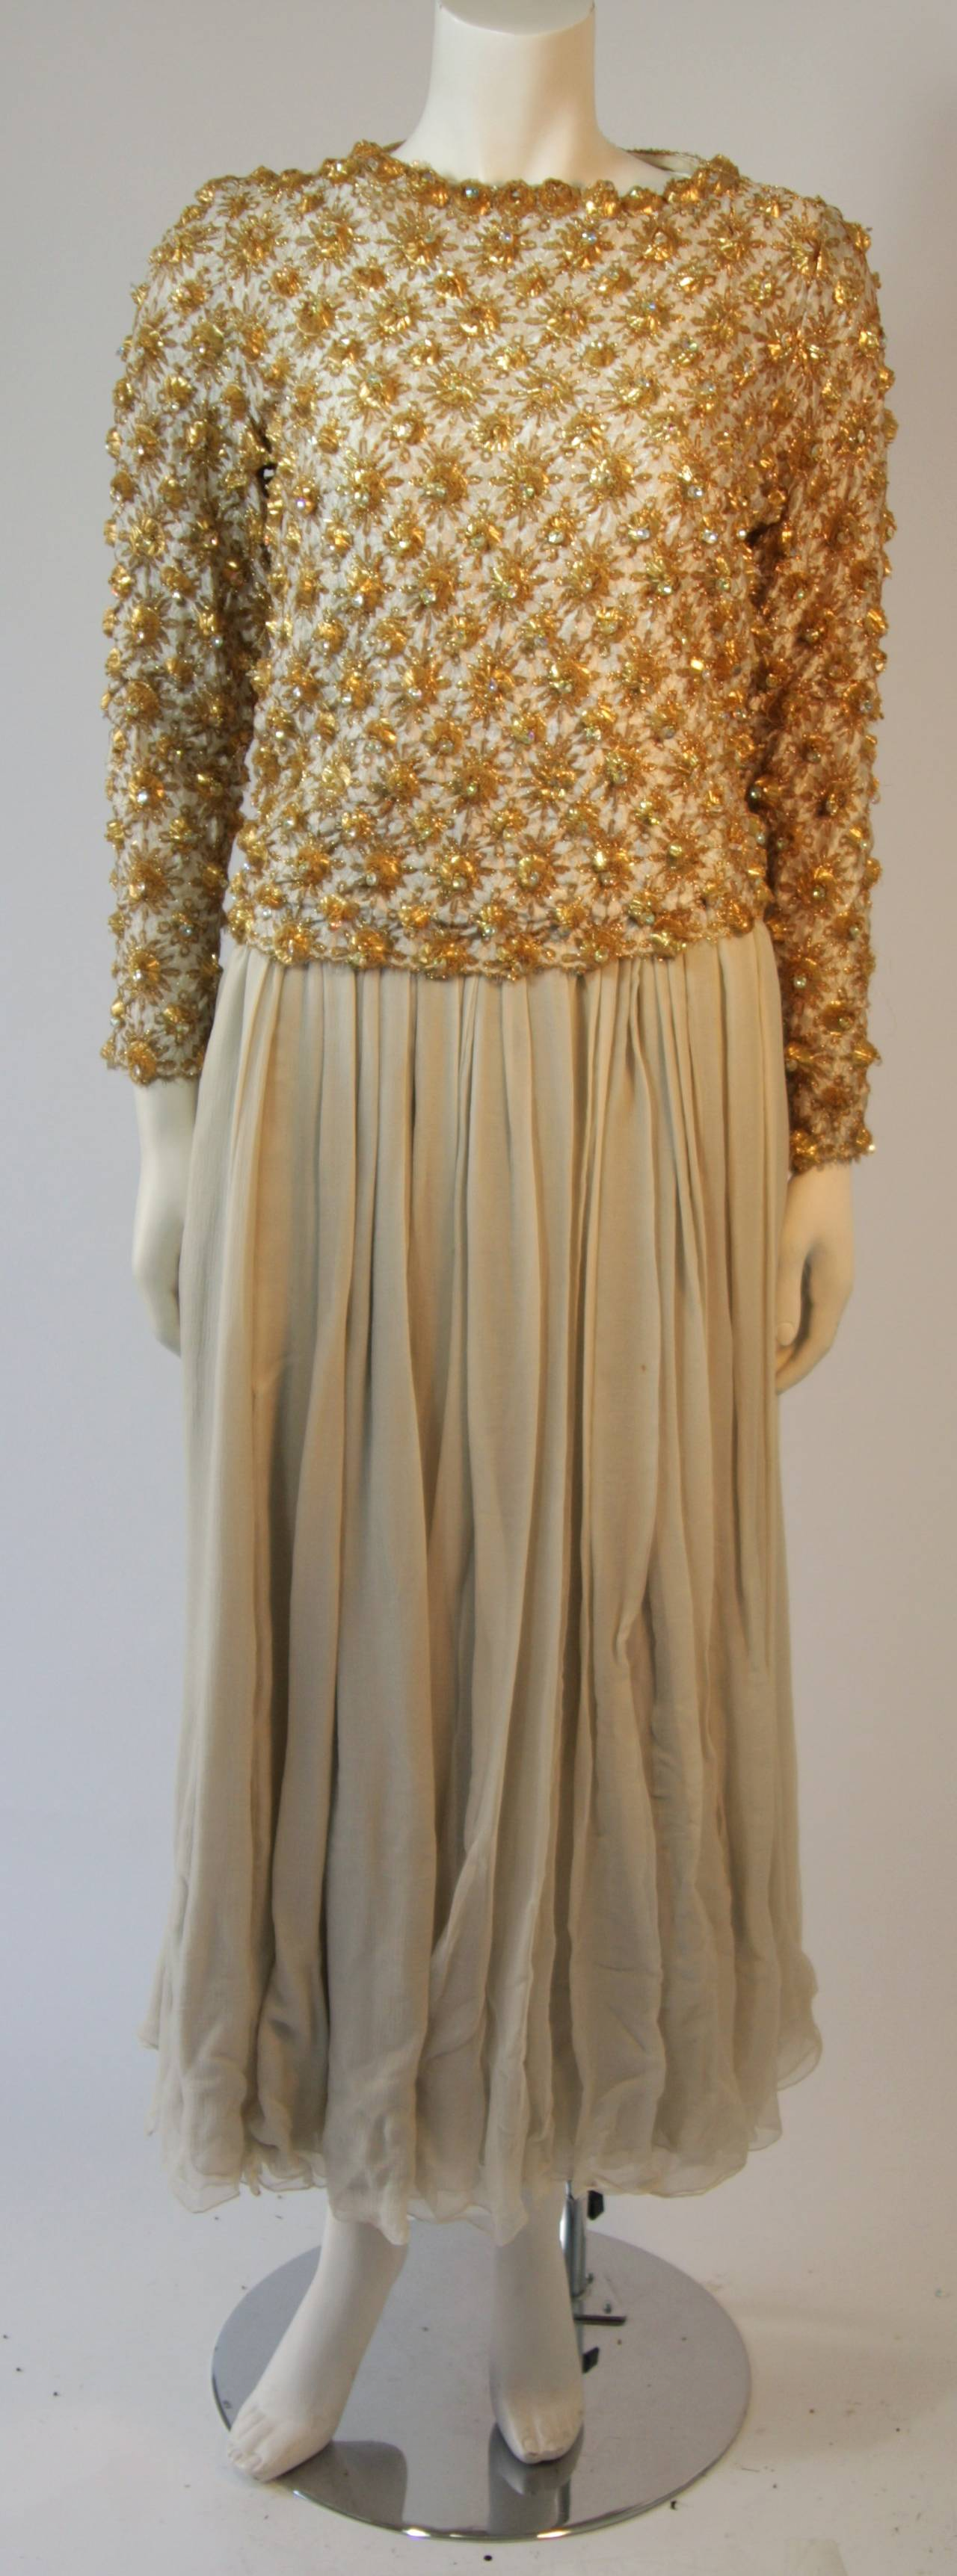 Gold and Chiffon Embellished 2 Piece Gown 2